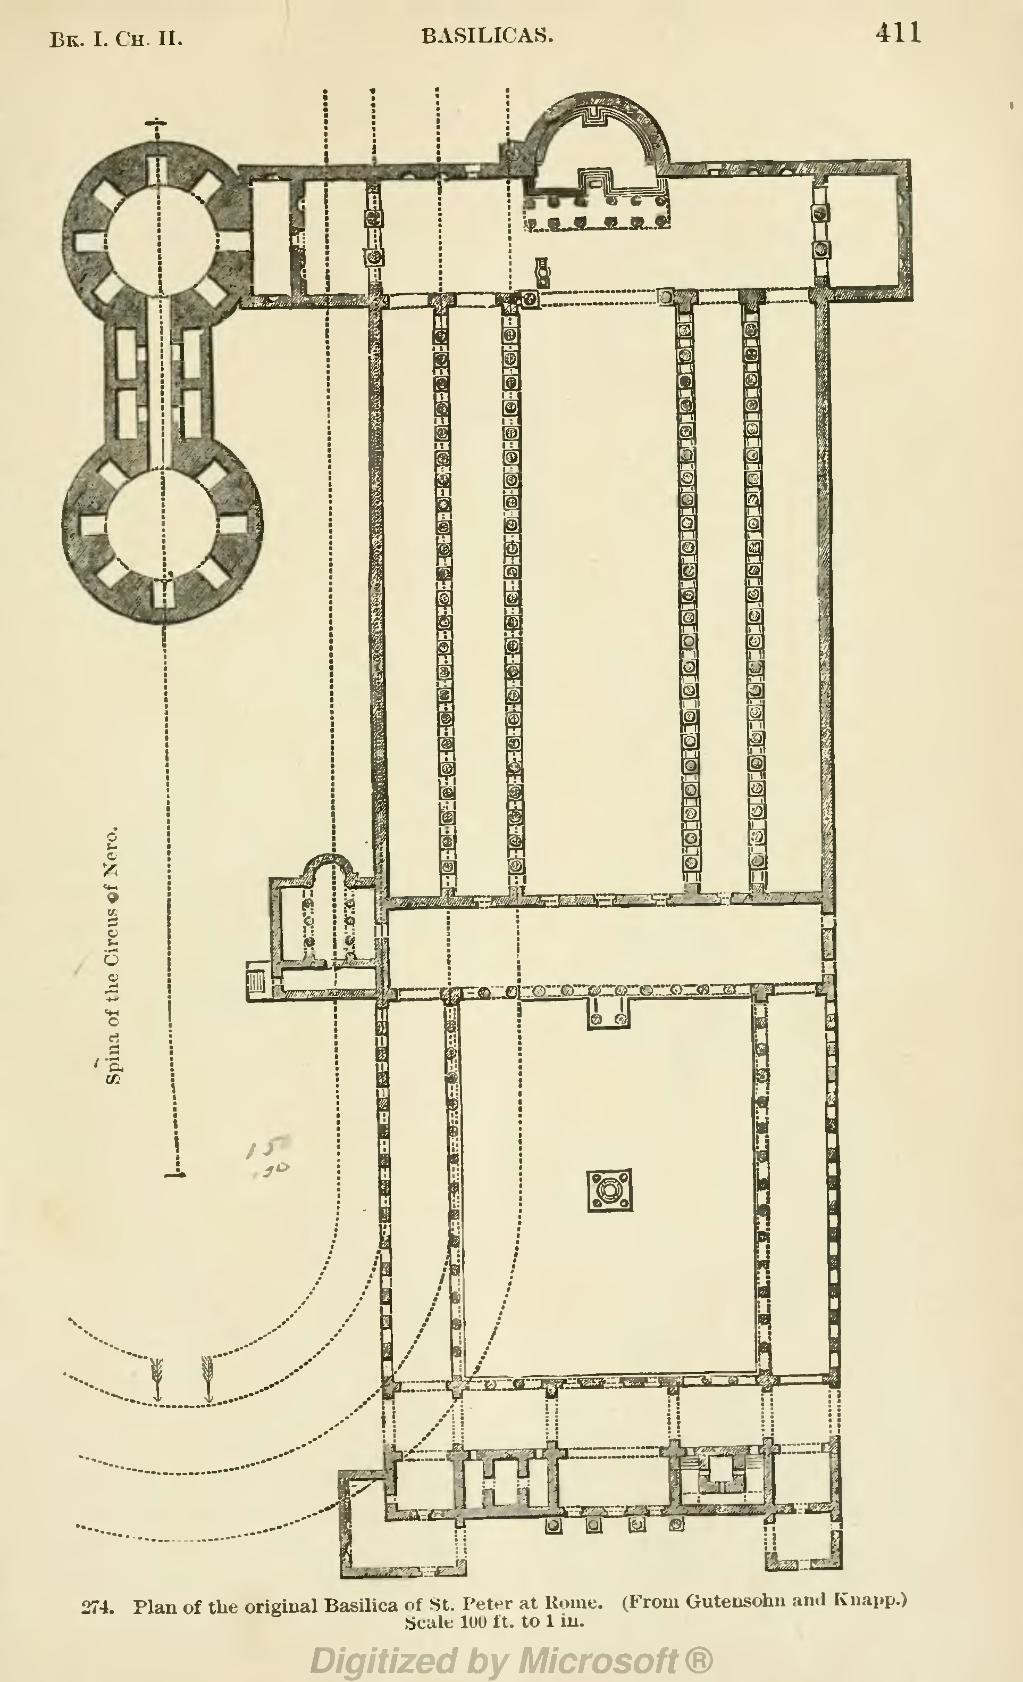 hight resolution of plan of the original basilica of st peter at rome from gutensohn and knapp scale l00 ft to 1 in